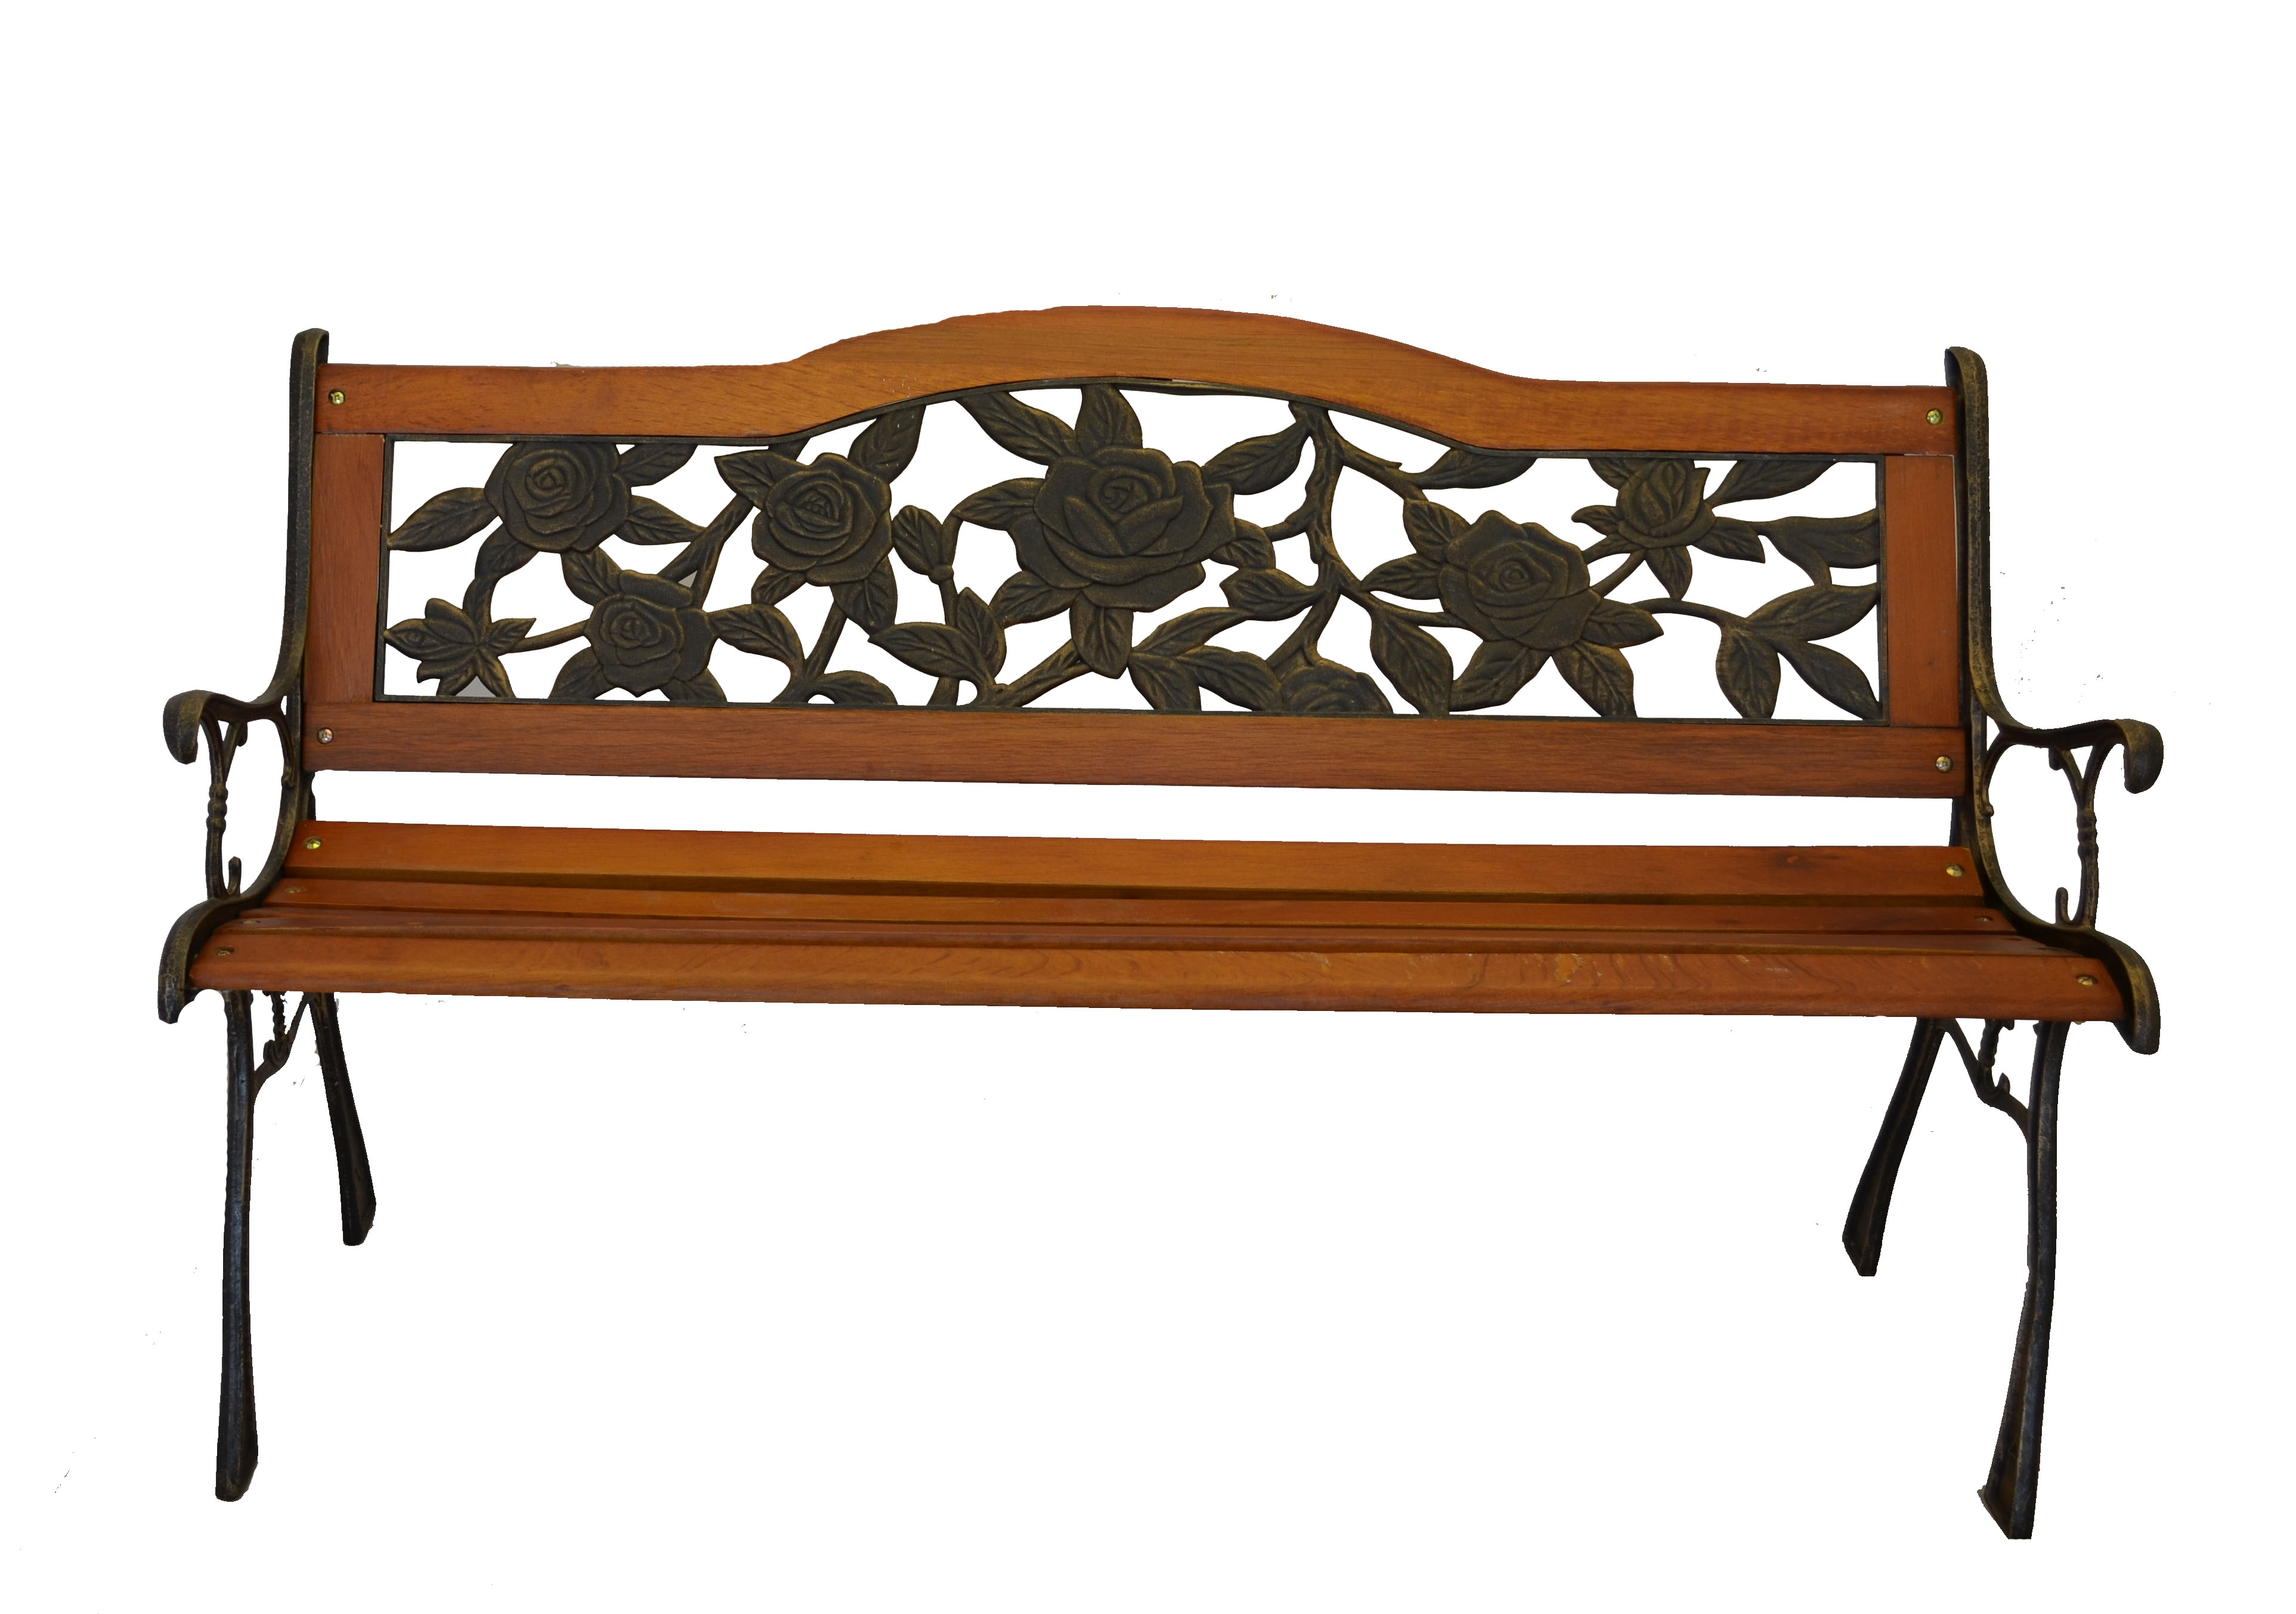 Rose Bloom Cast Iron Park Bench W Resin Back Insert For Yard Or Garden Ebay